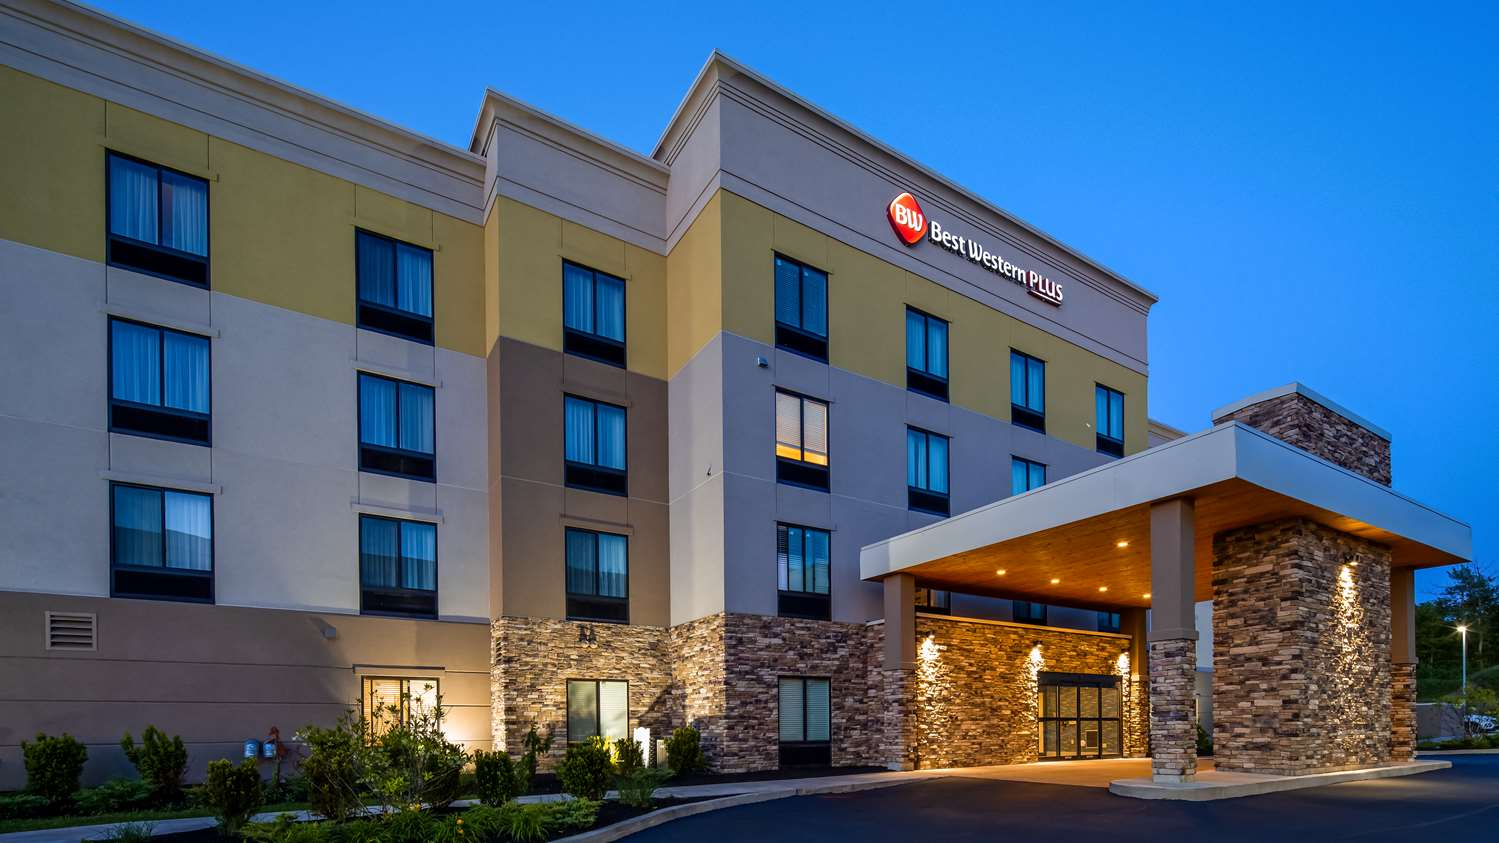 Hotels in Erie PA | Best Western Plus Erie Inn & Suites